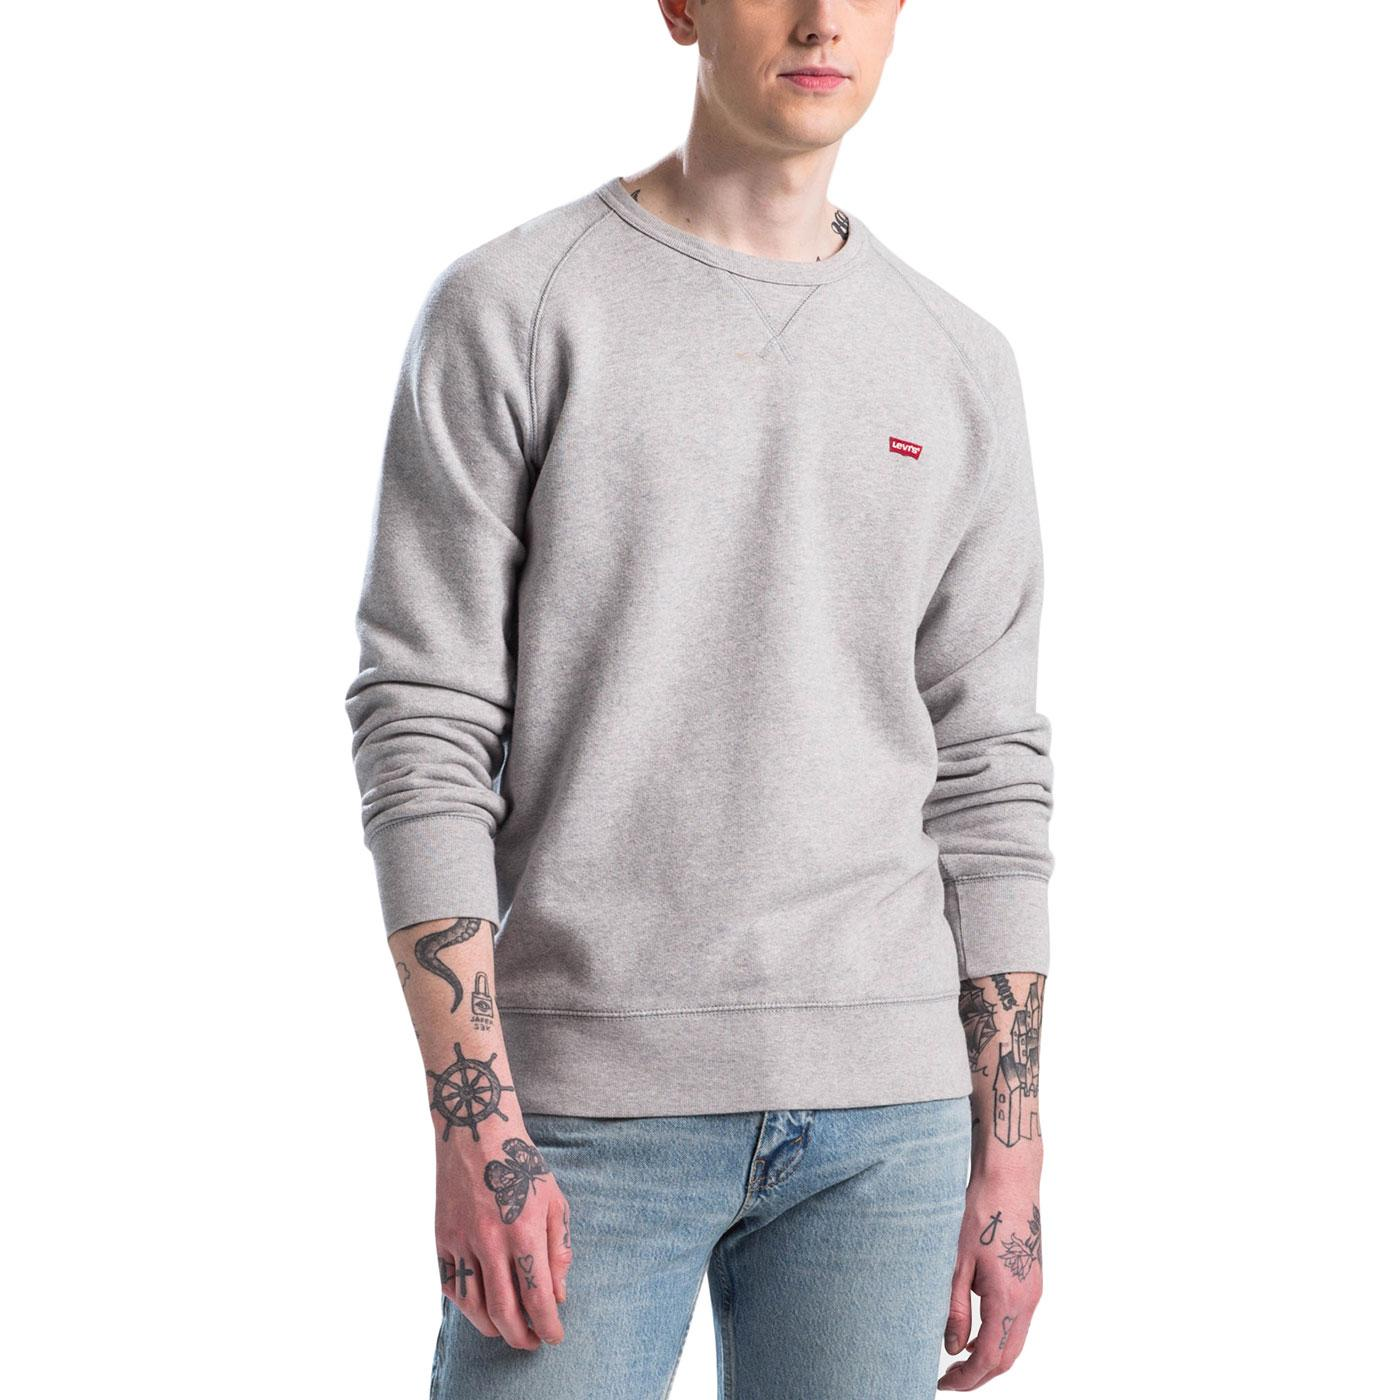 LEVI'S Men's Retro HM Icon Crew Sweatshirt (Grey)